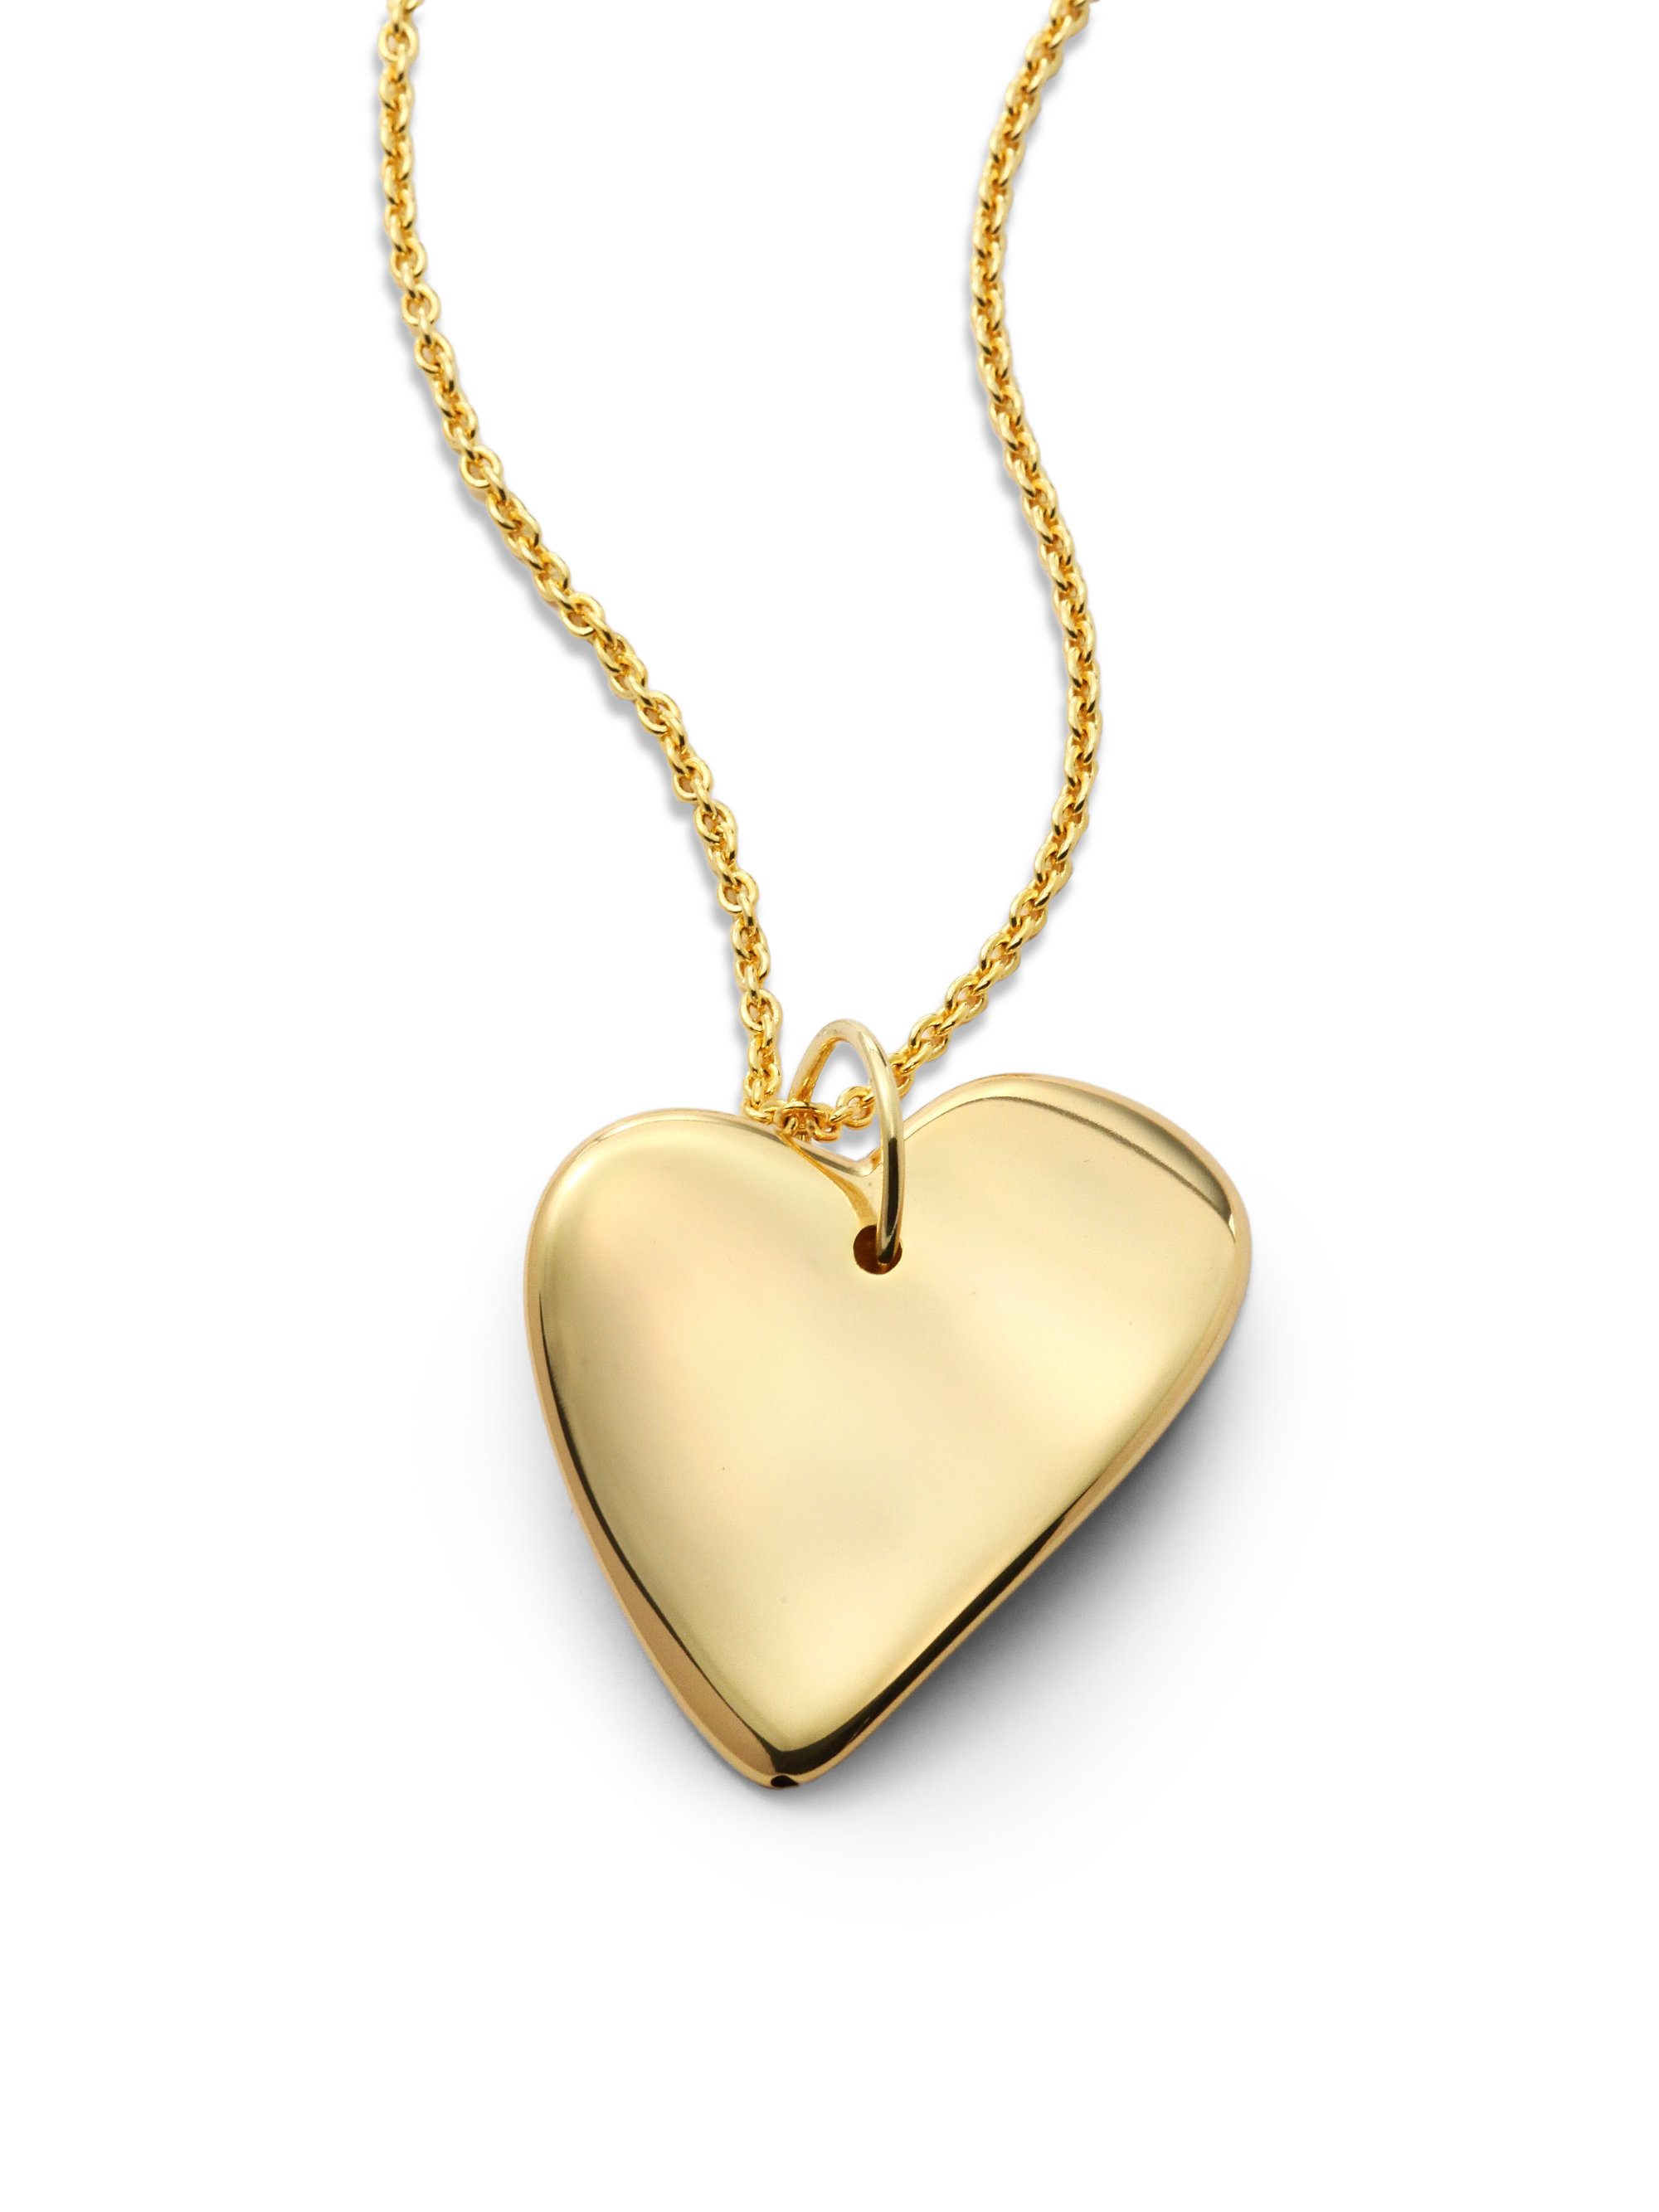 1Arunoaerre Metallic Asymmetrical Heart Pendant Necklace Pertaining To Most Current Asymmetrical Heart Necklaces (View 1 of 25)